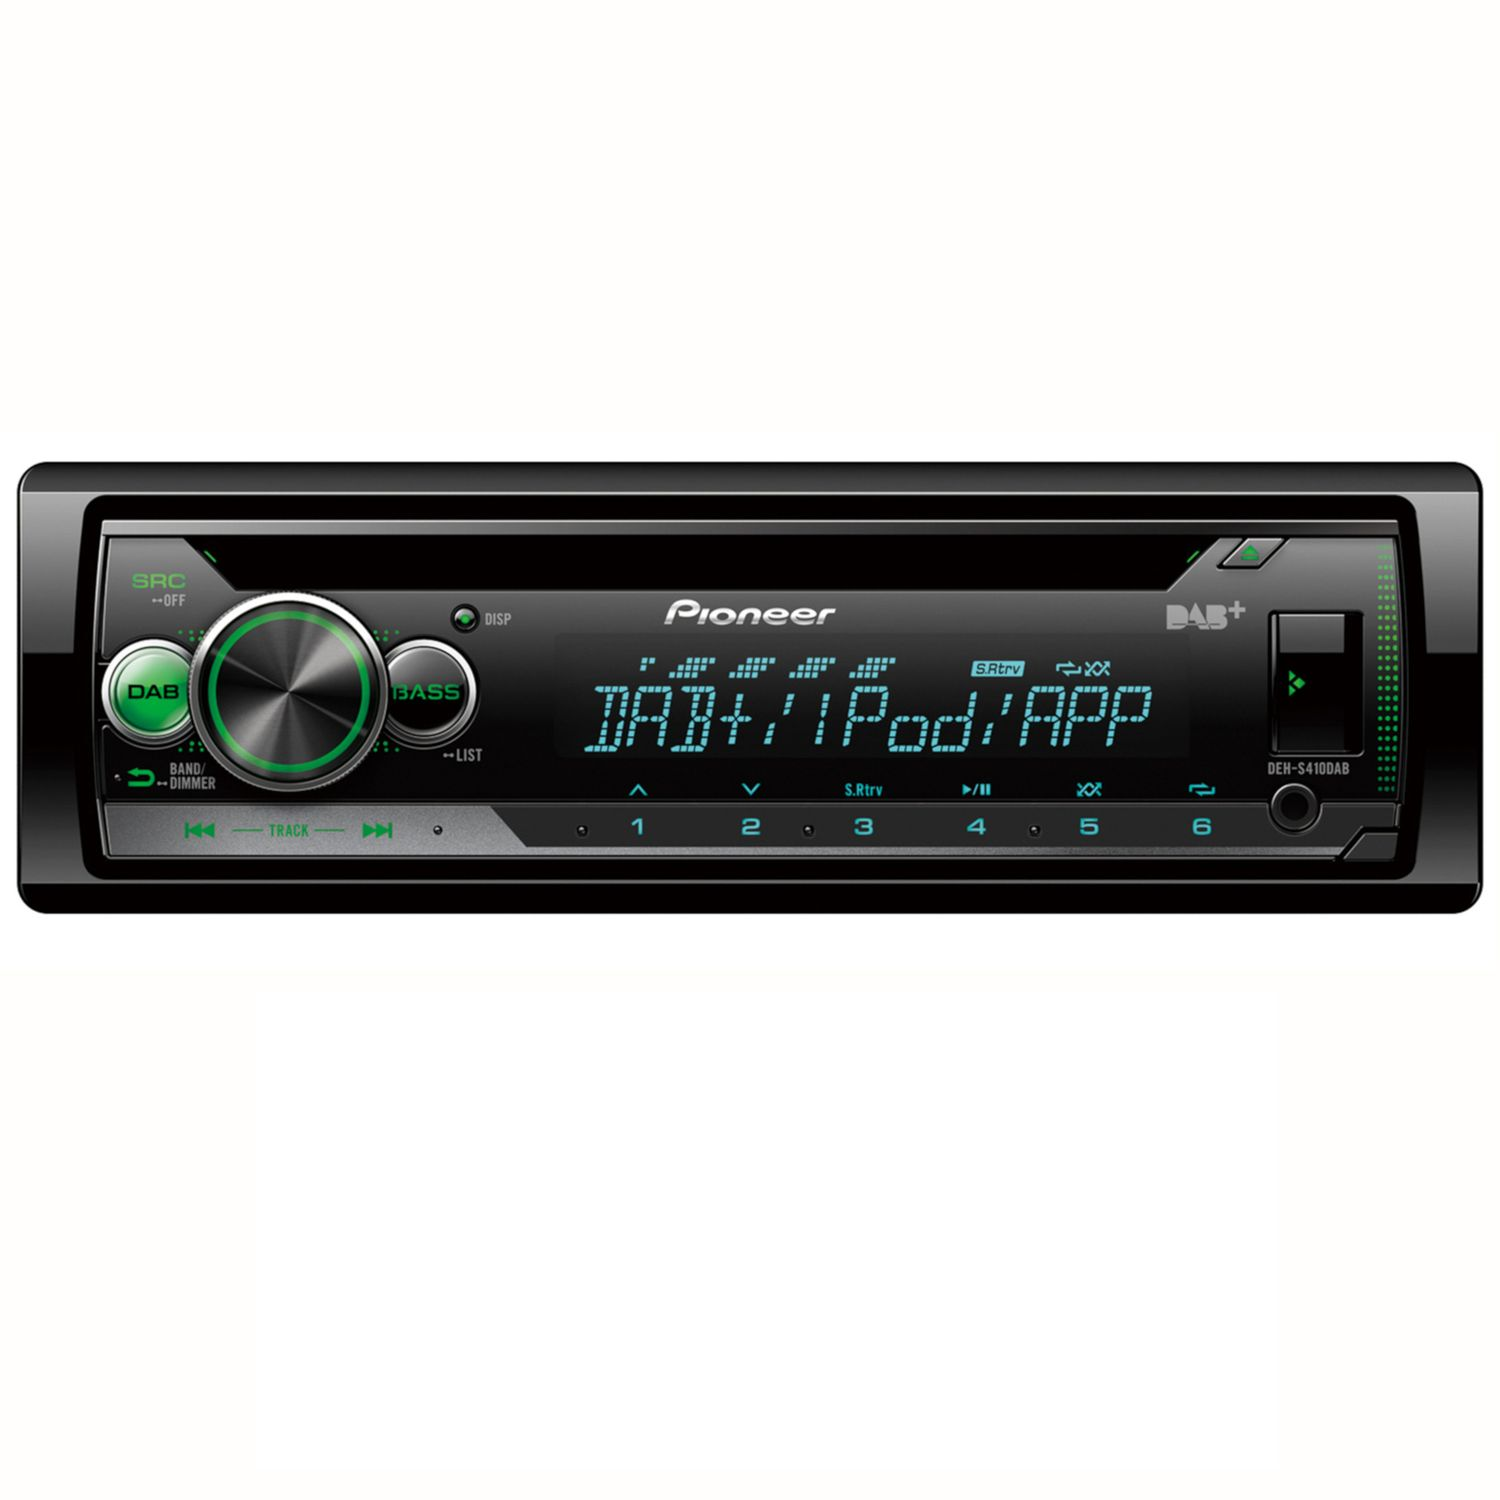 pioneer deh s410dab cd mp3 dab usb autoradio digitalradio. Black Bedroom Furniture Sets. Home Design Ideas